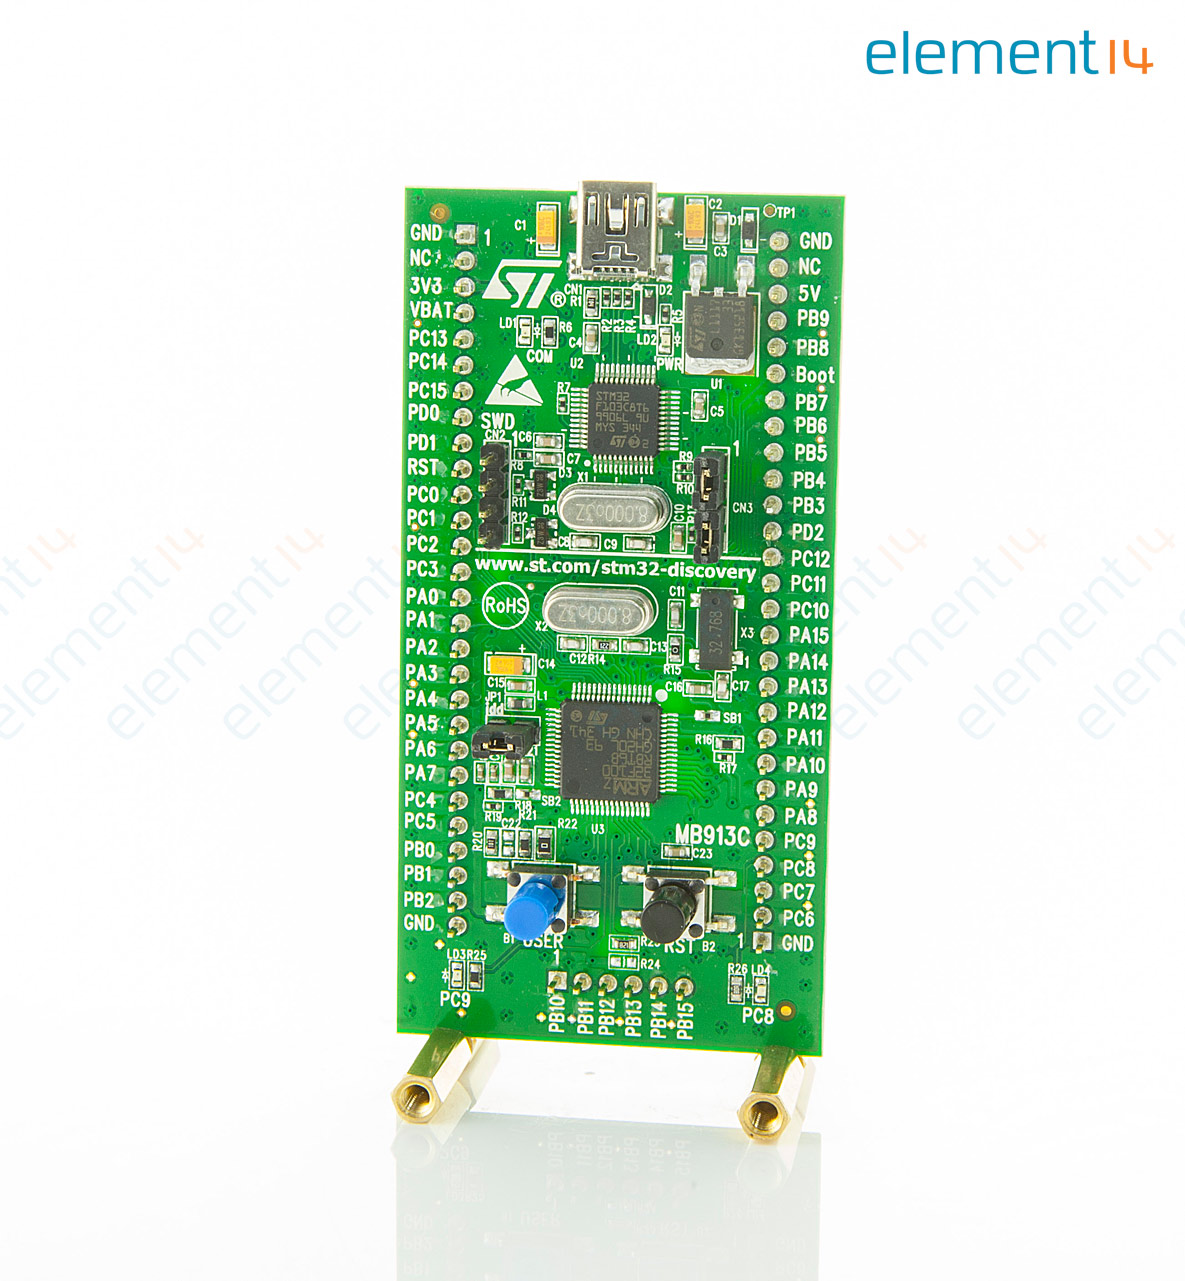 Stm32vldiscovery Stmicroelectronics Development Kit Stm32f100rb 2014 Embedded Systems Pic Microcontrollers Solar System 21 Comments Mcu On Board St Link With Selection Mode Switch Extension Header